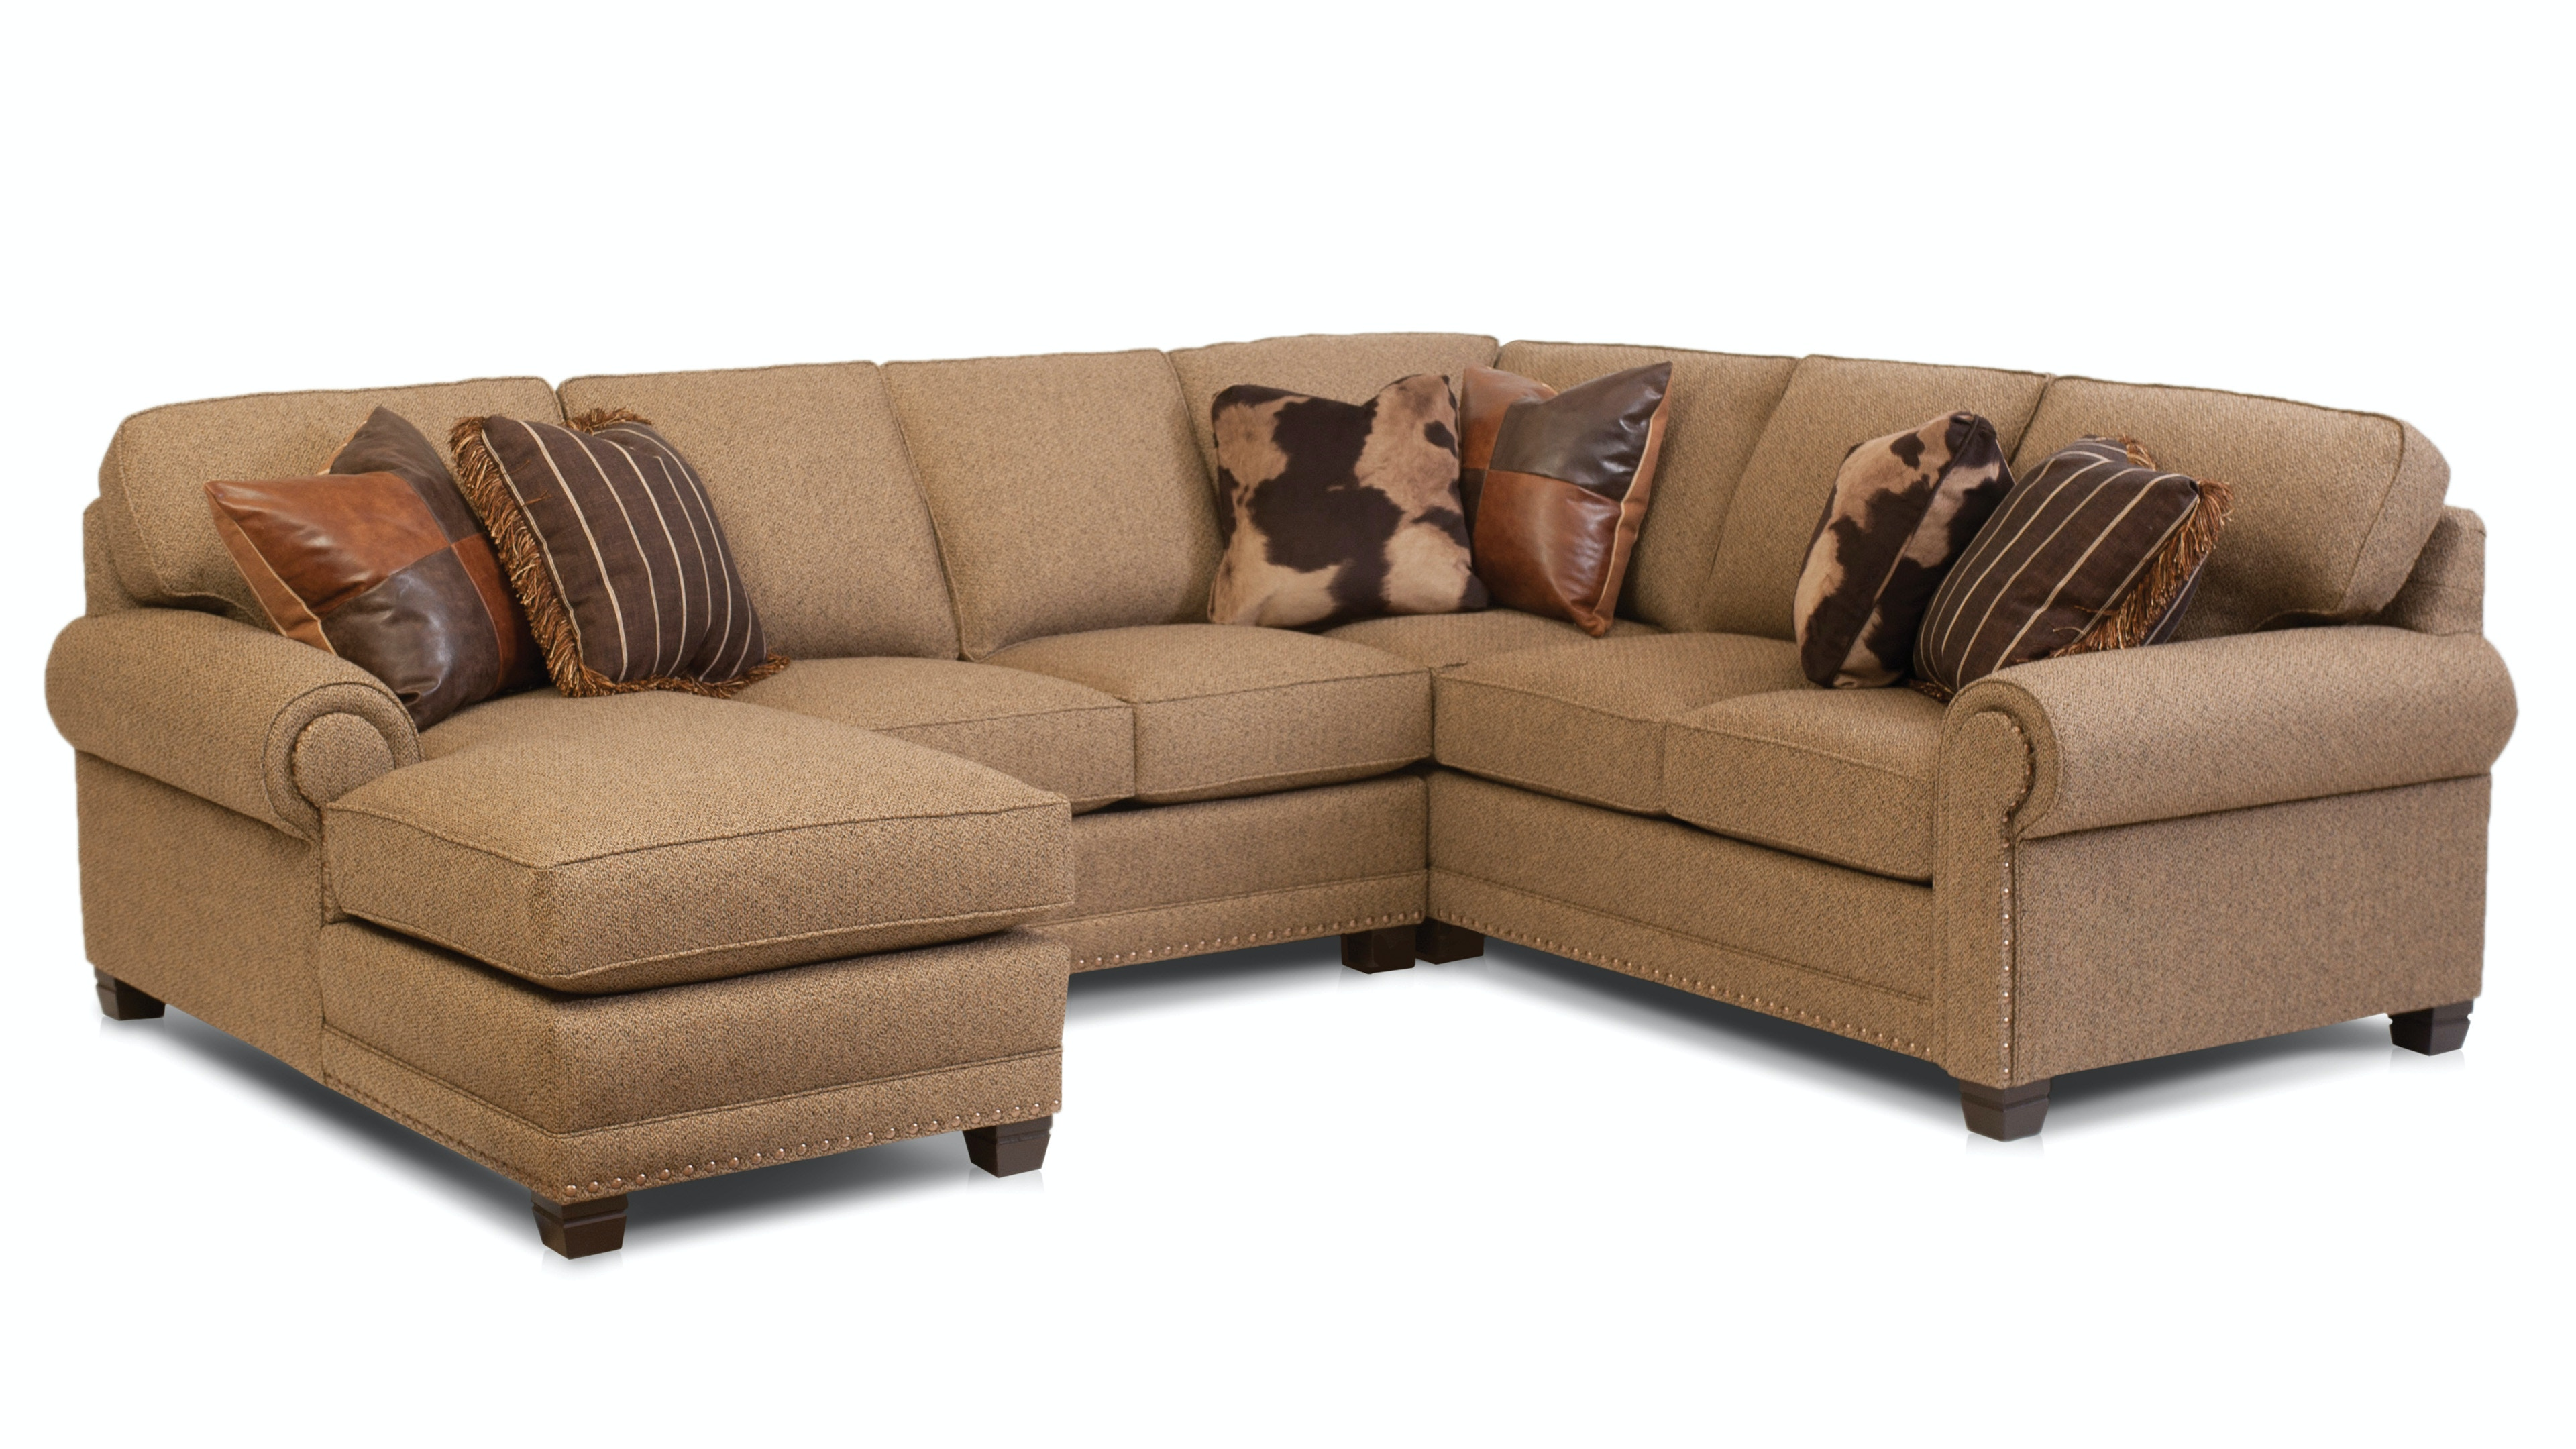 Smith Brothers Living Room 393-sectional - Whitley